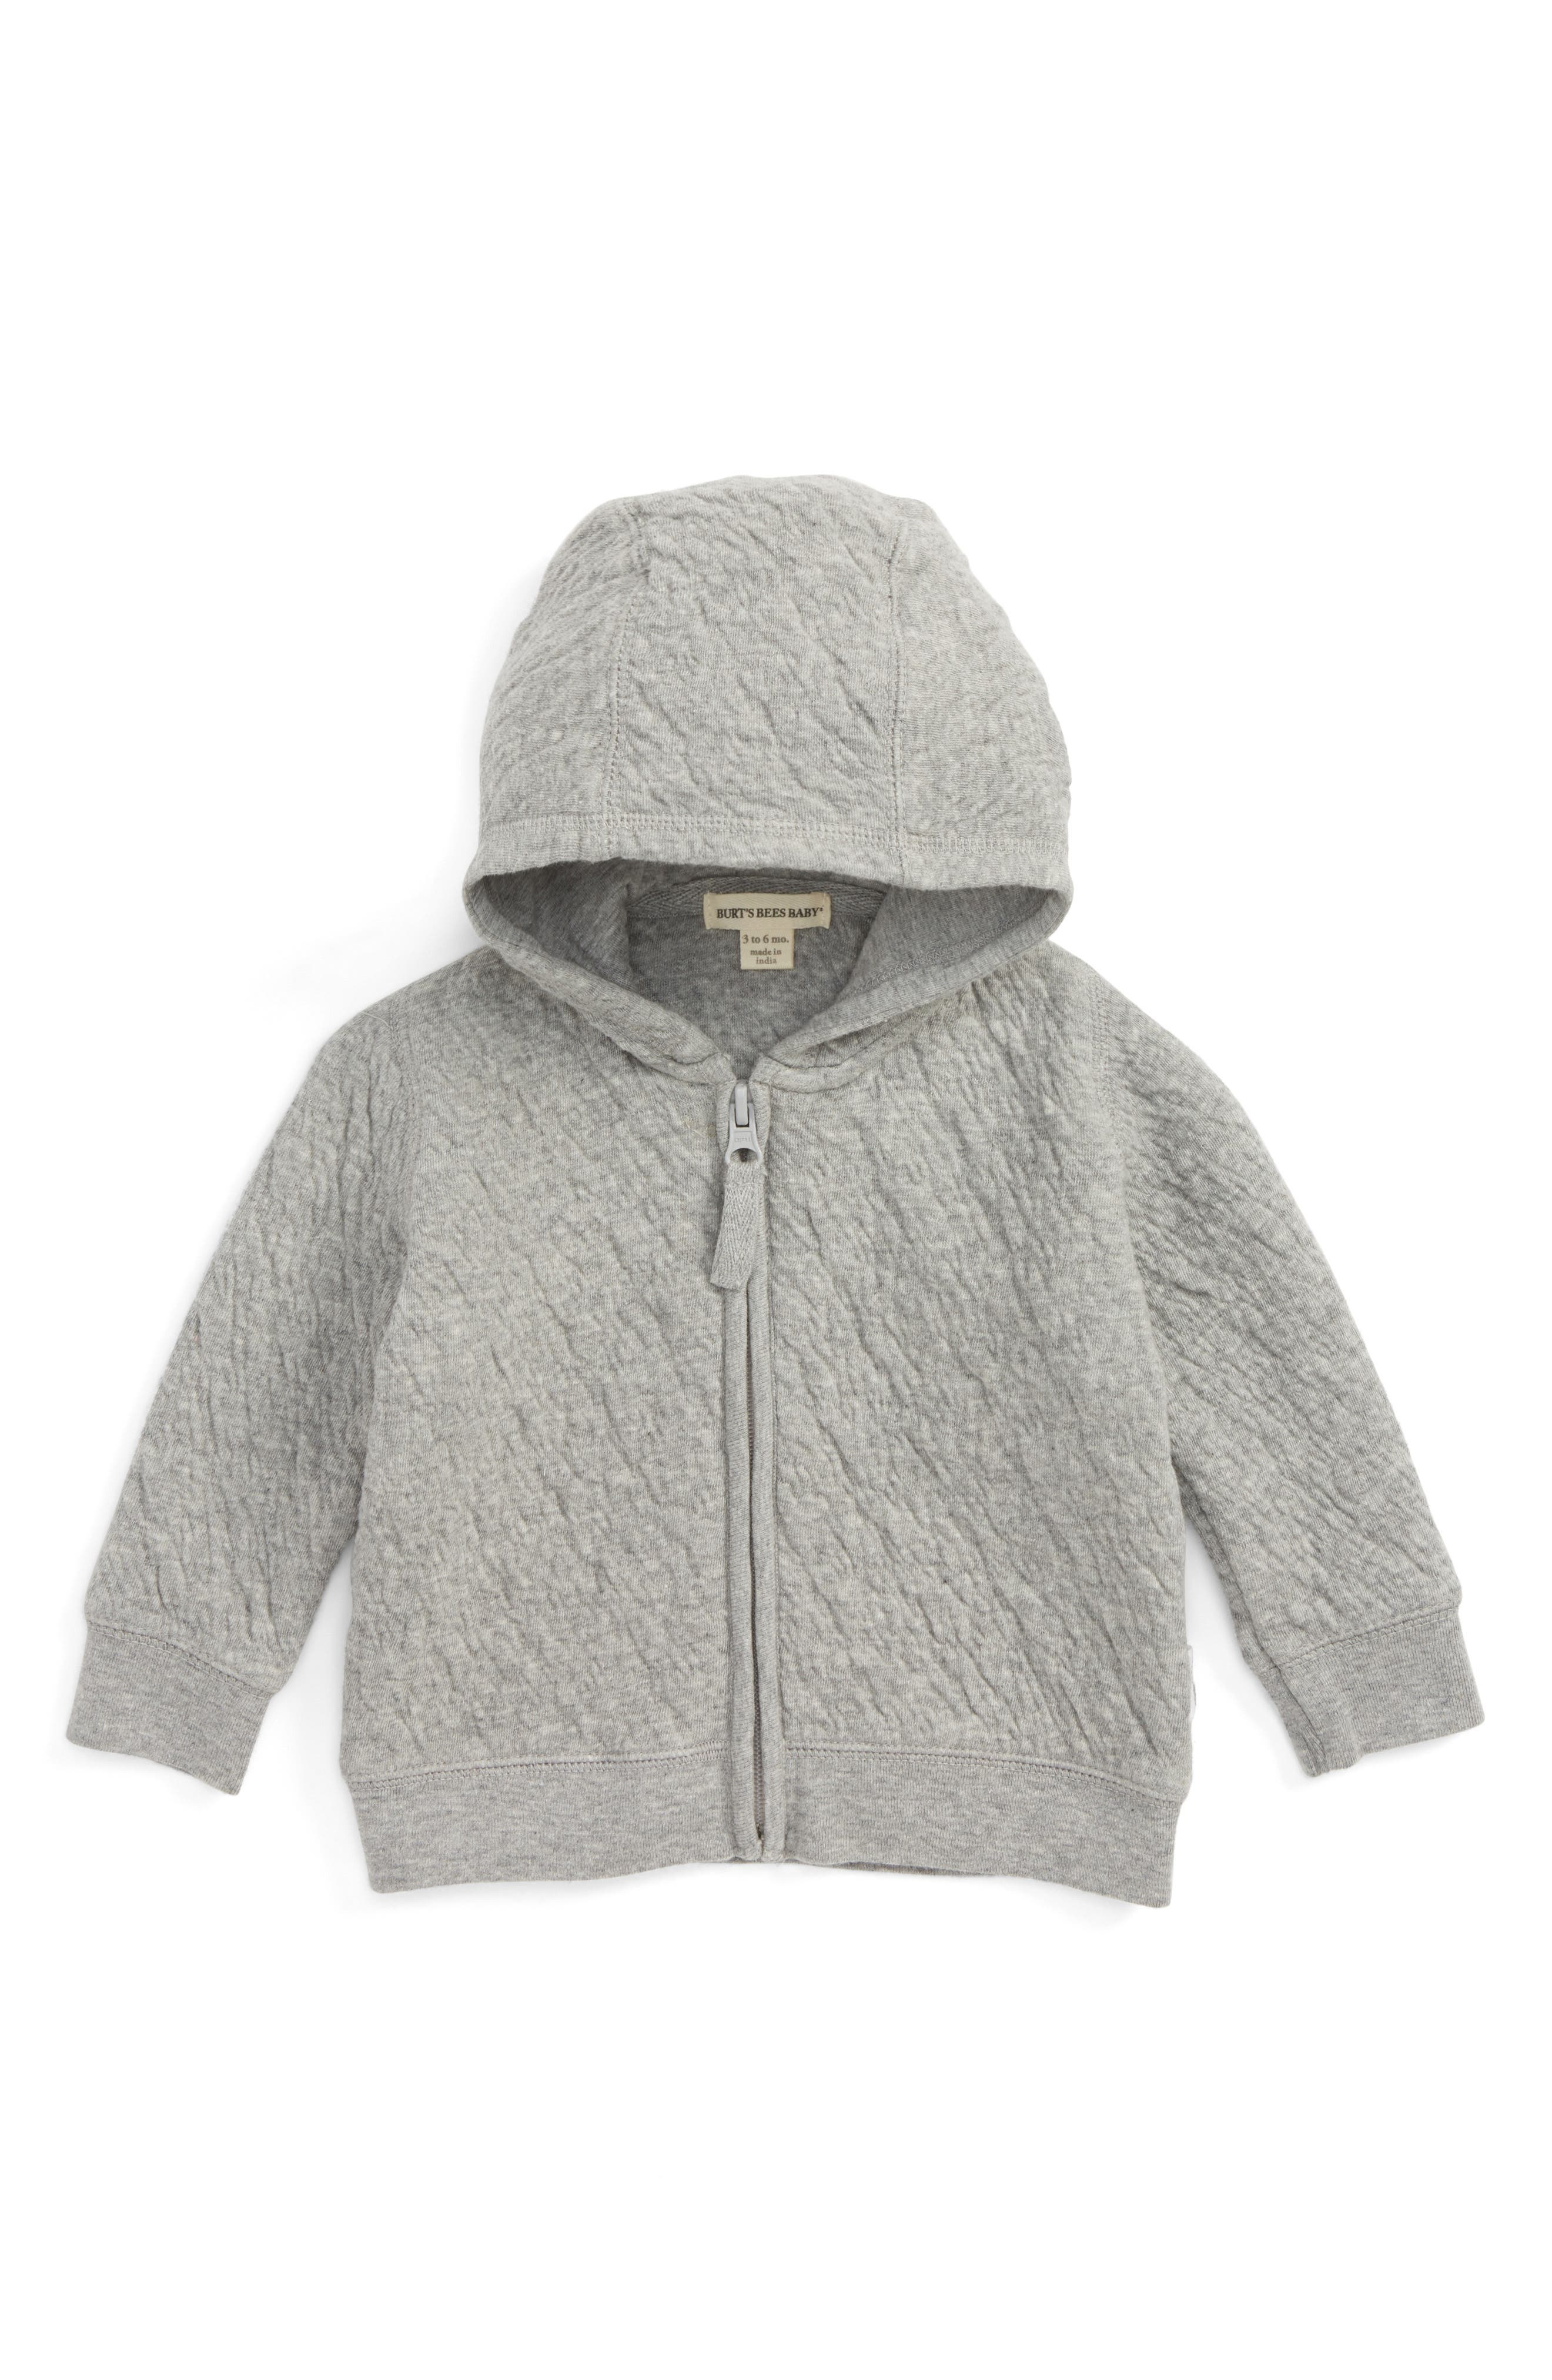 Burt's Bees Baby Quilted Organic Cotton Hooded Jacket (Baby)